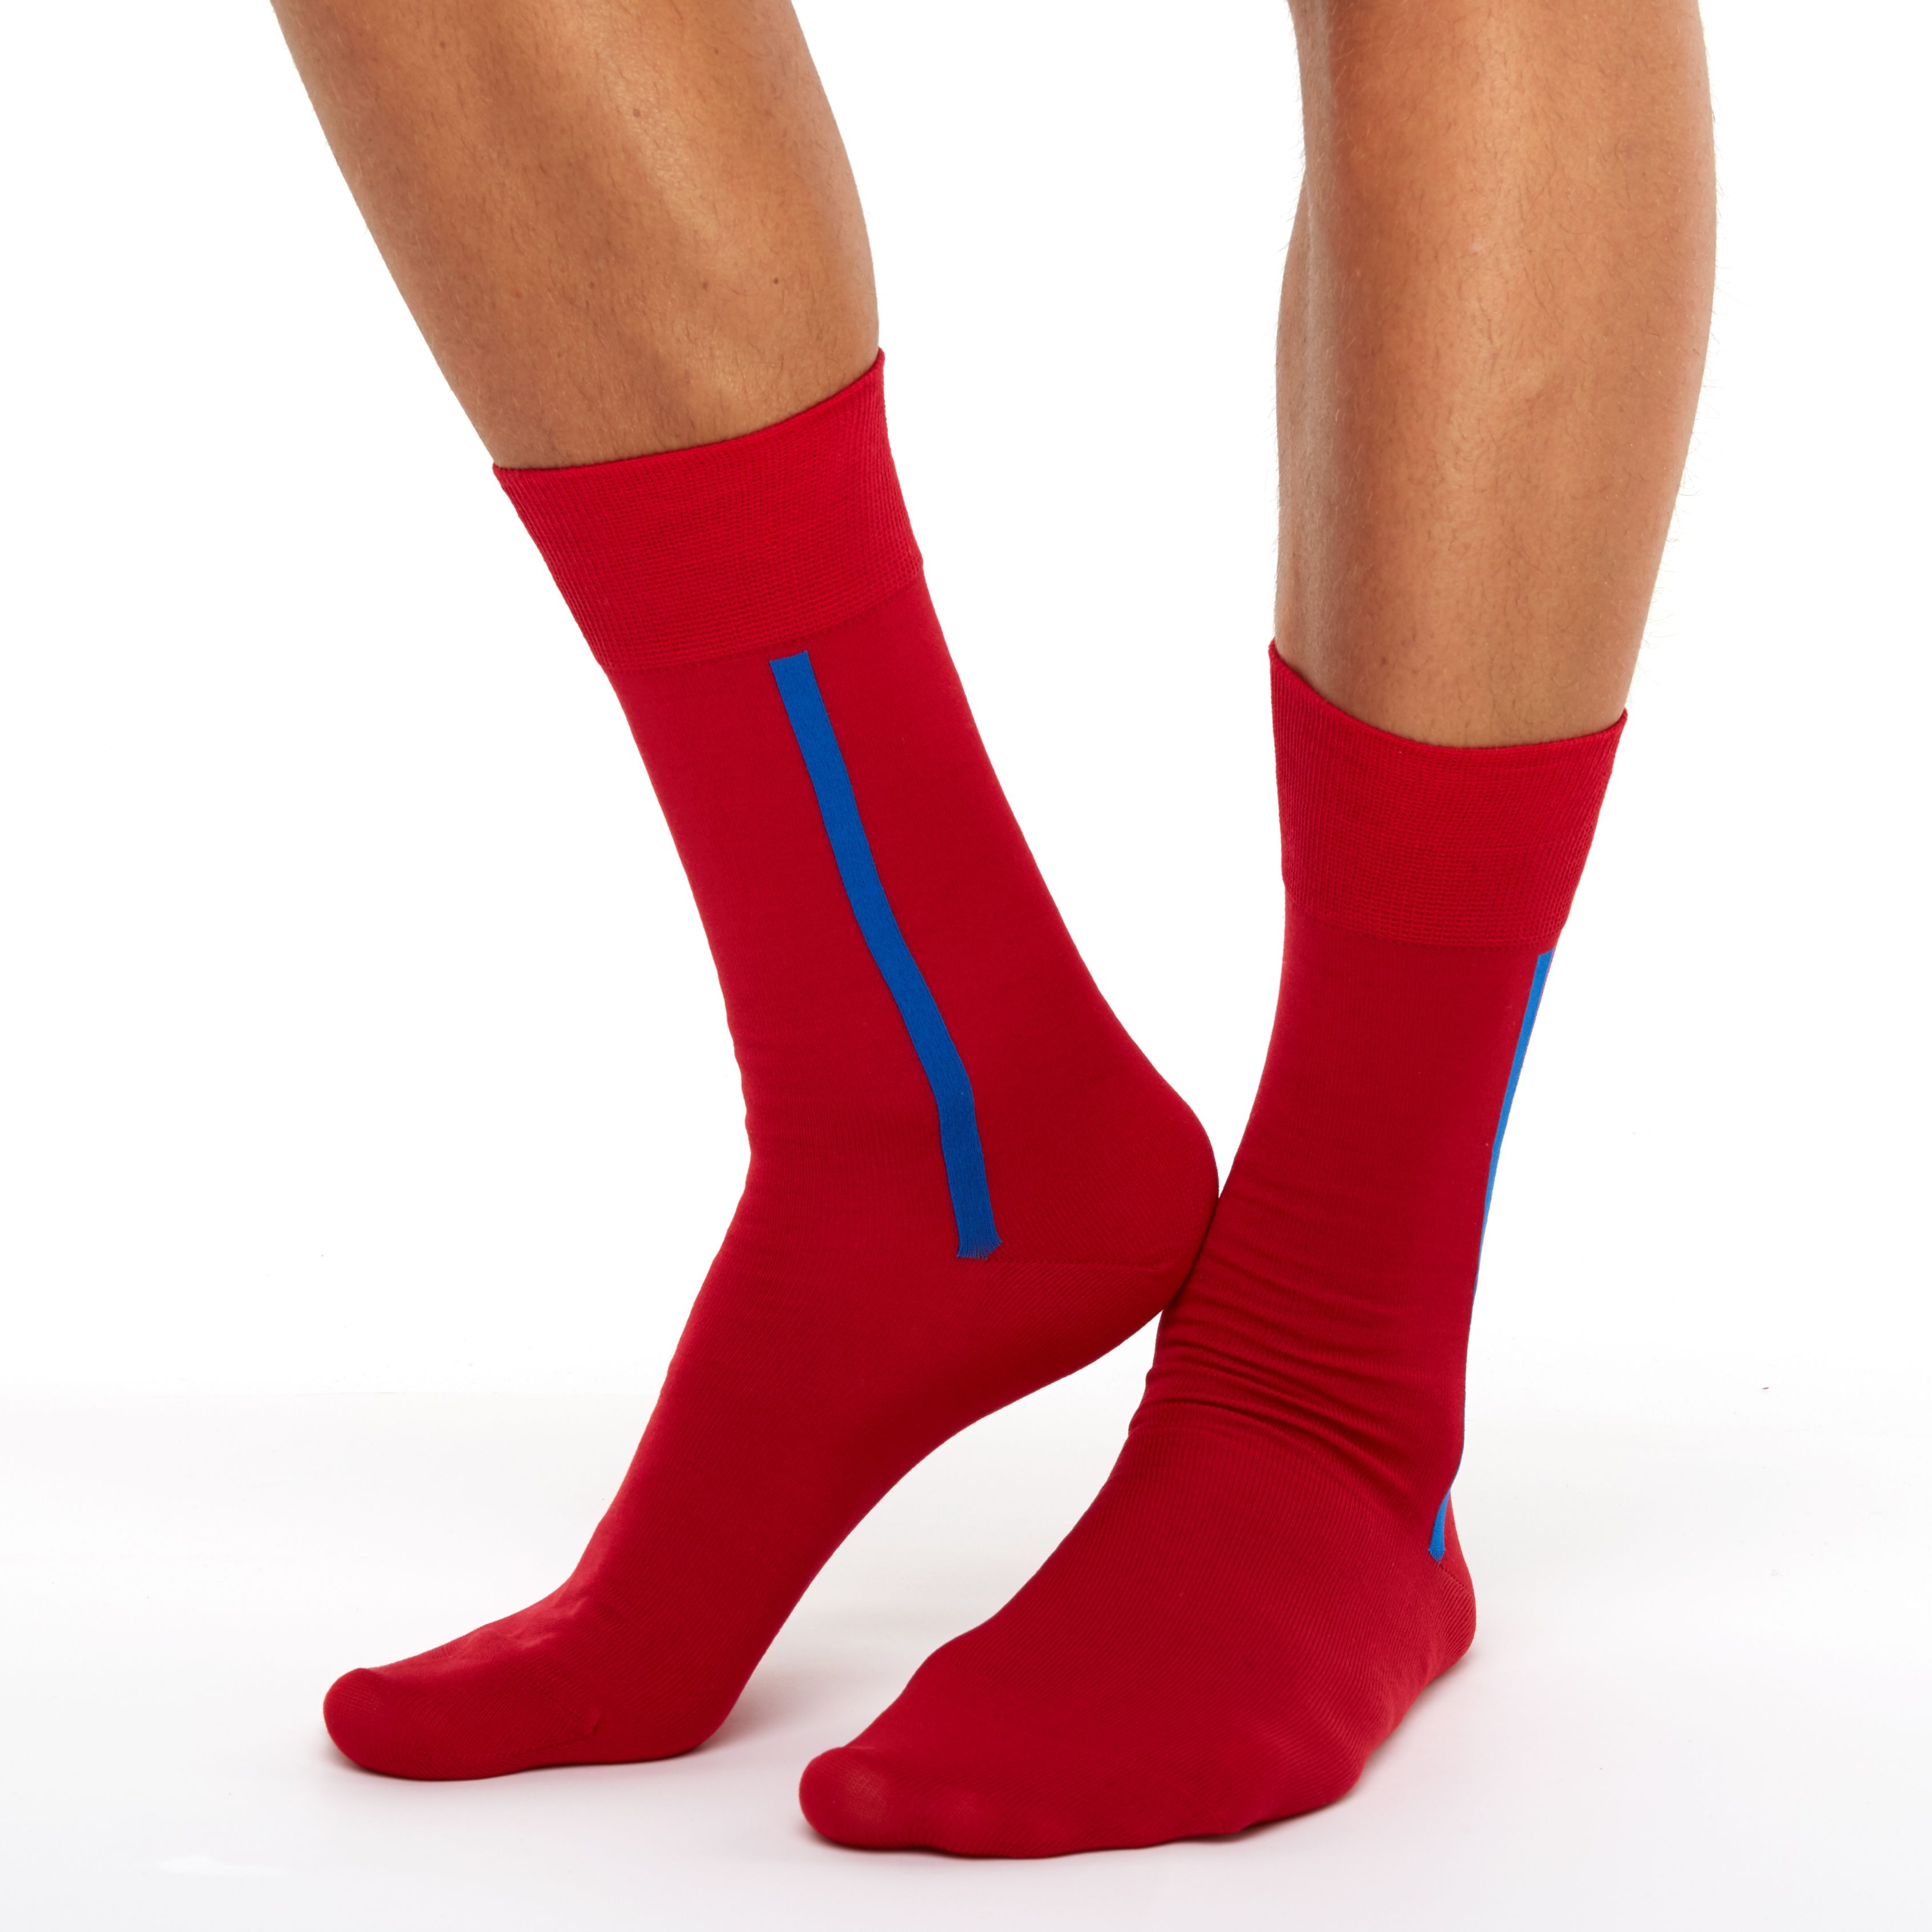 a9269edcfc247 If you're up to crazy socks target, pay attention to our cool mens colored  crew socks in awesome red color. With its new stylish design these casual  long ...